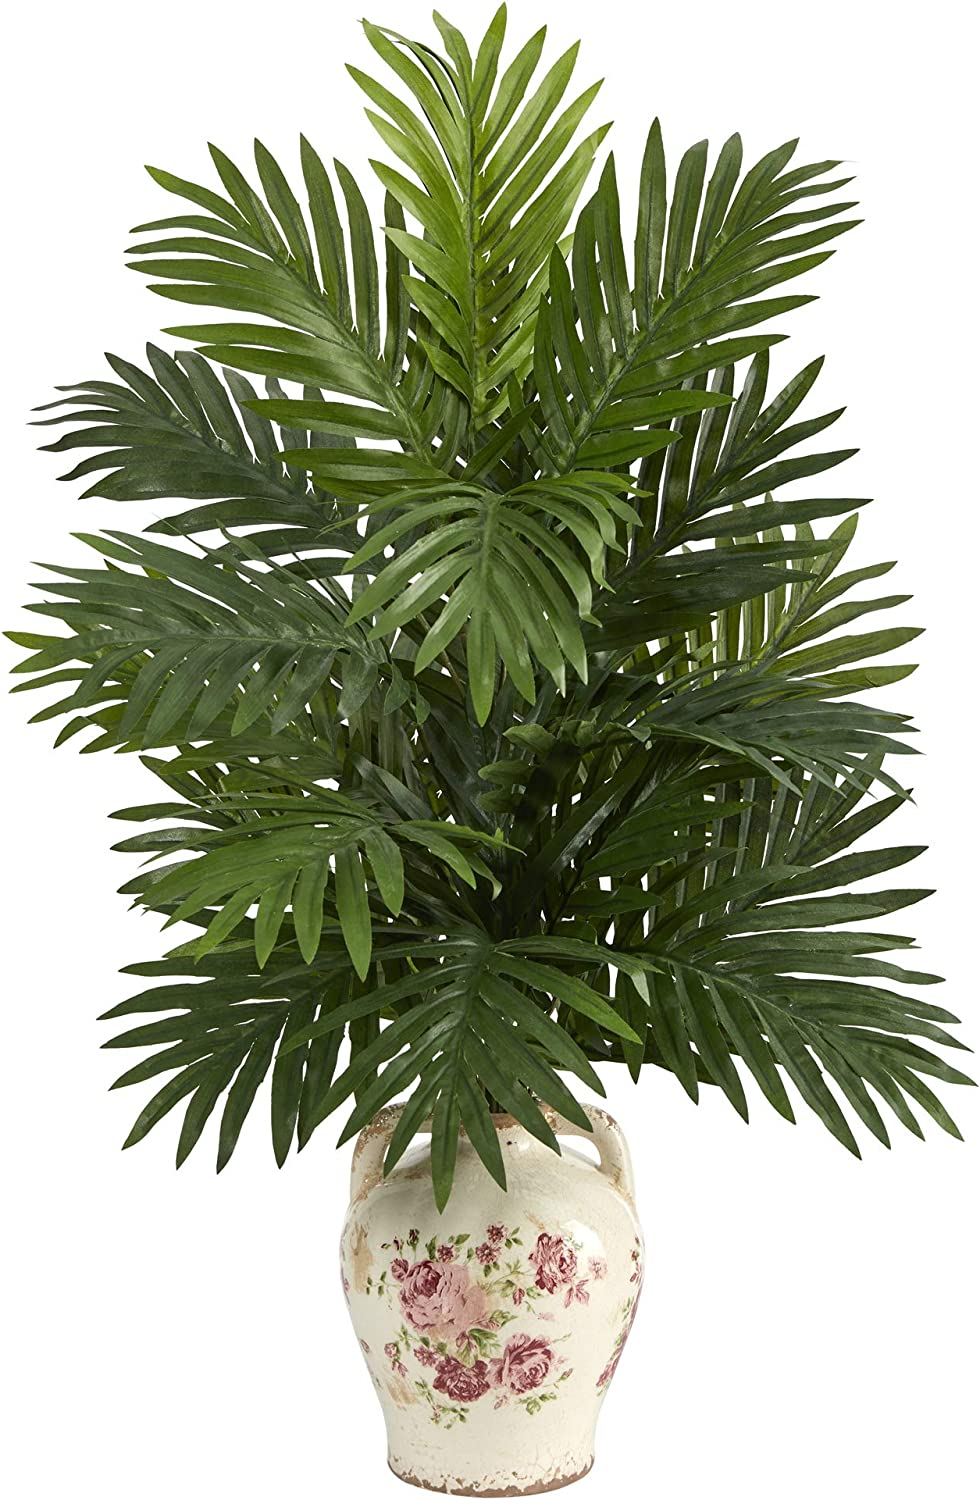 27in. Areca Palm 67% OFF of fixed price Artificial Jar Floral Max 72% OFF in Plant